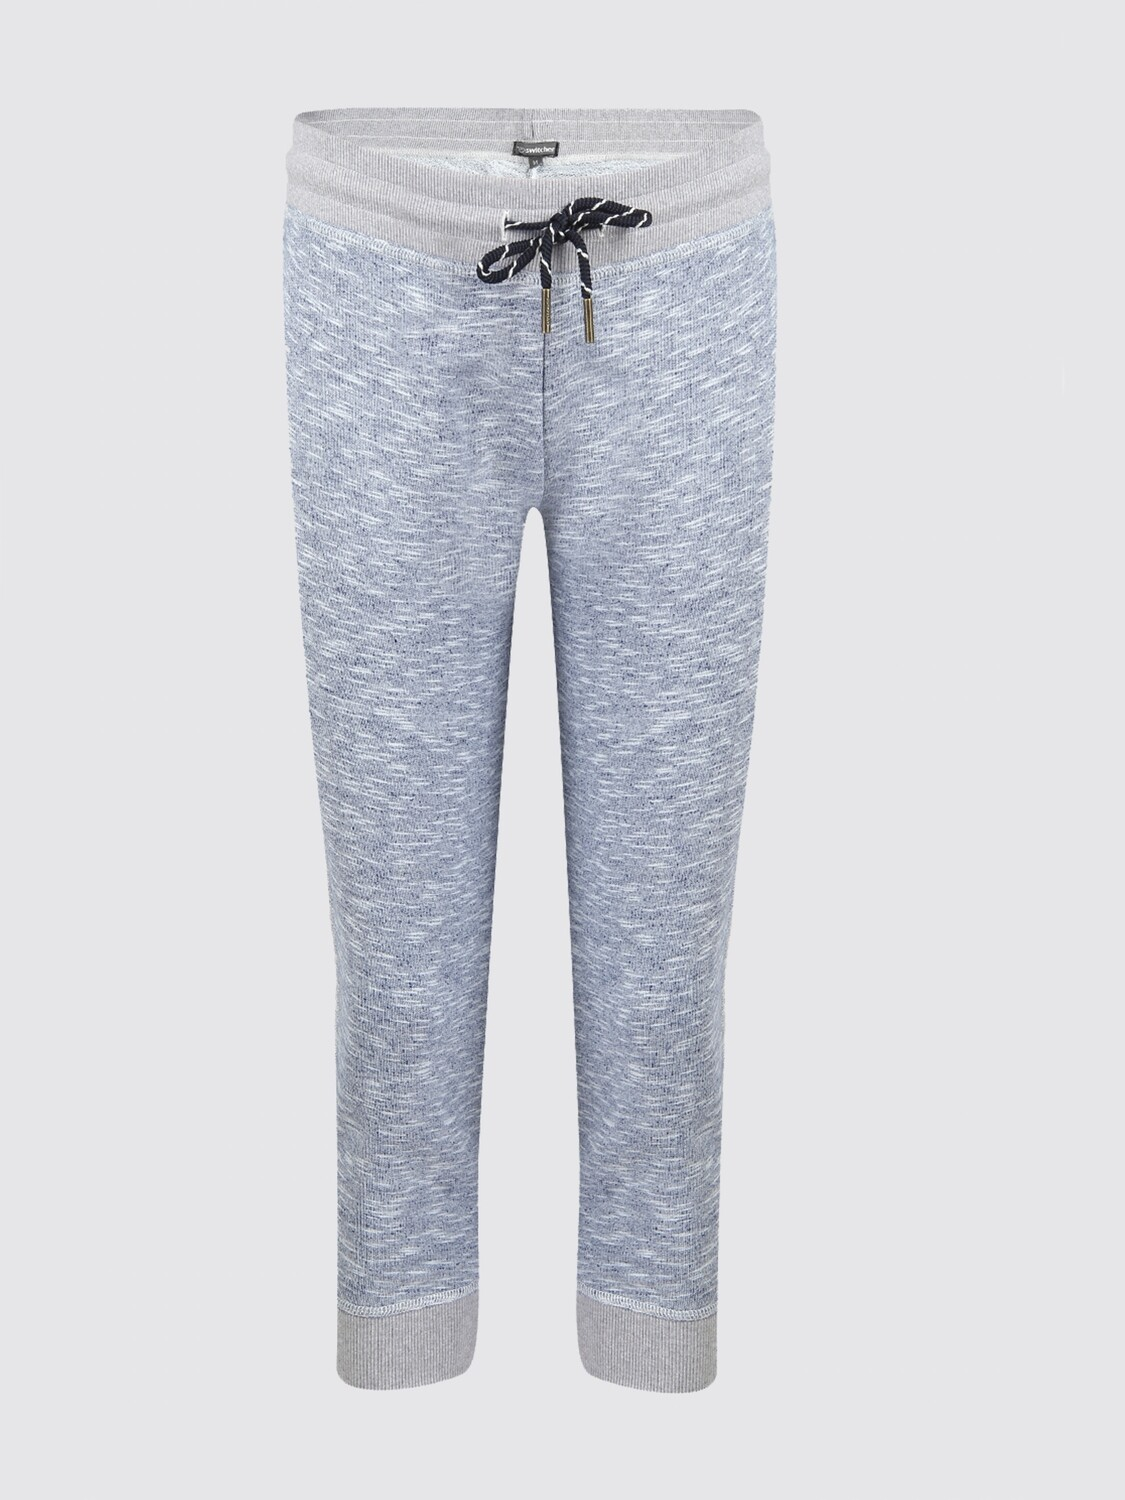 ​¾ Women's pants Switcher Ikarie